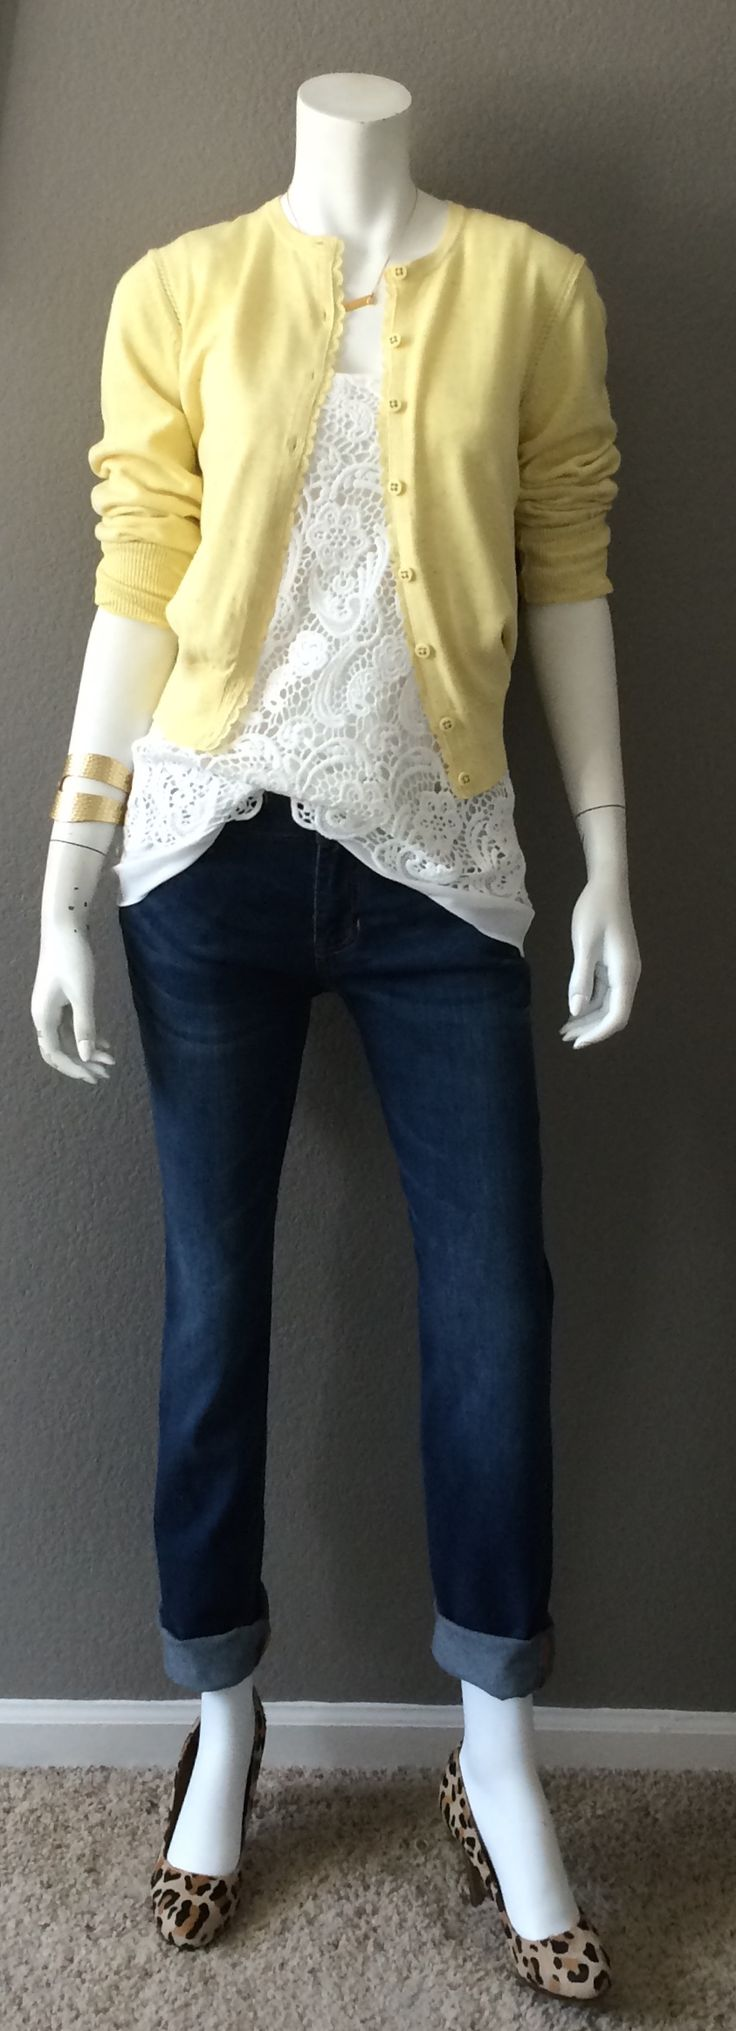 Daily Look: CAbi Spring '15 Laguna Wash Slim Boyfriend Jean, Bobbin Lace Top and Sunny Cardigan with cheetah pumps and our awesome Hammered Bangle. This outfit is the Me-ist!